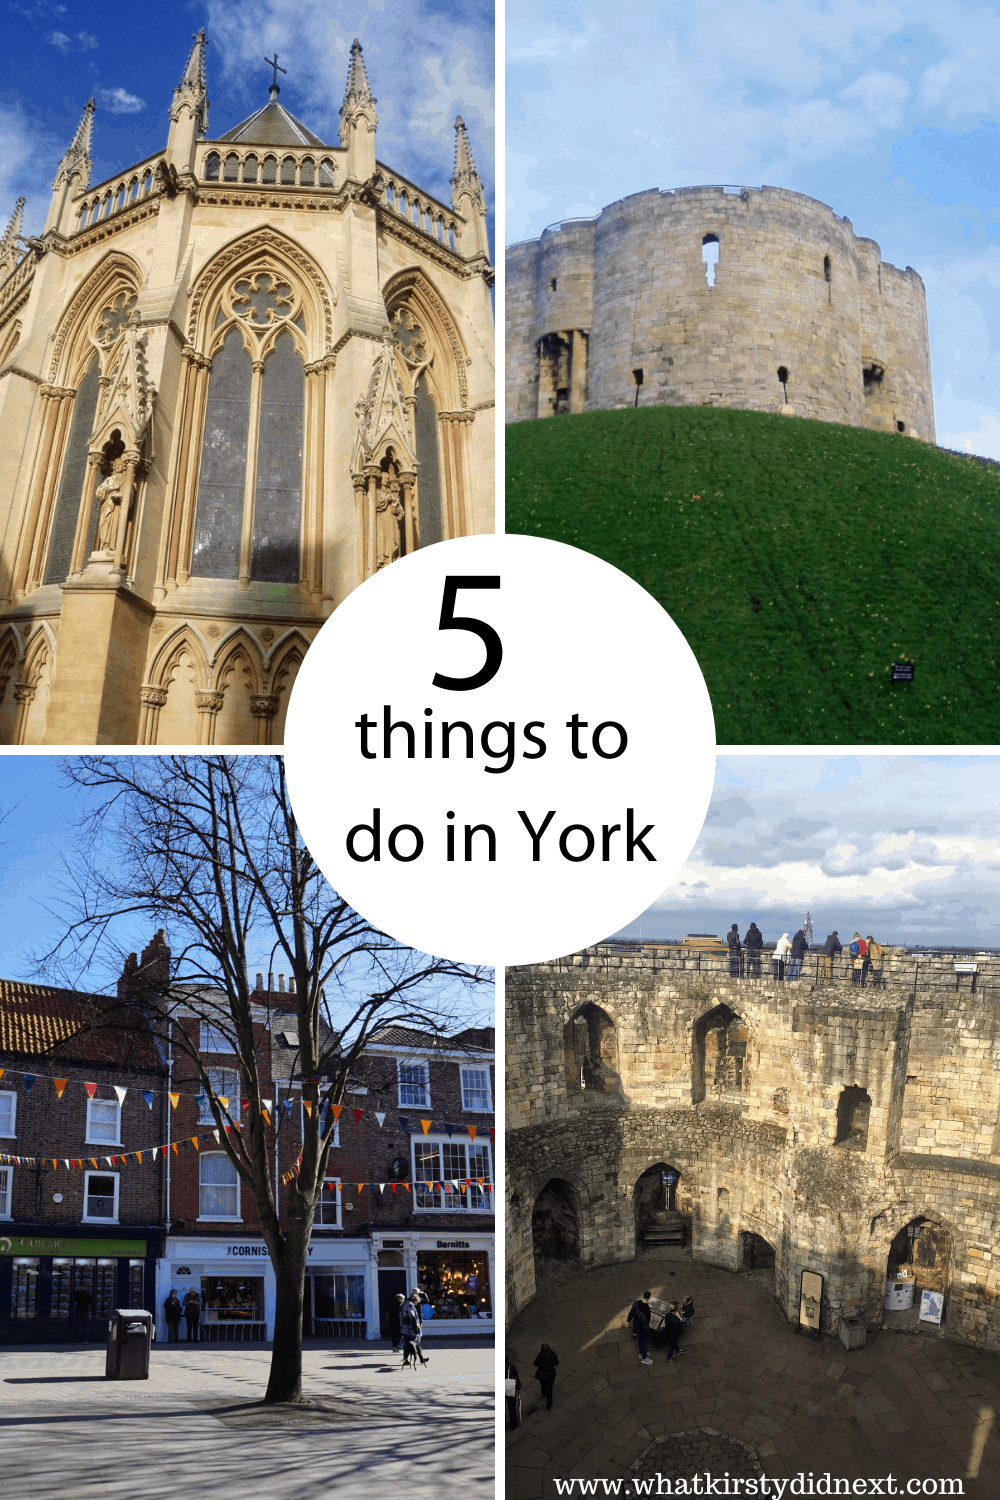 Five things to do in York